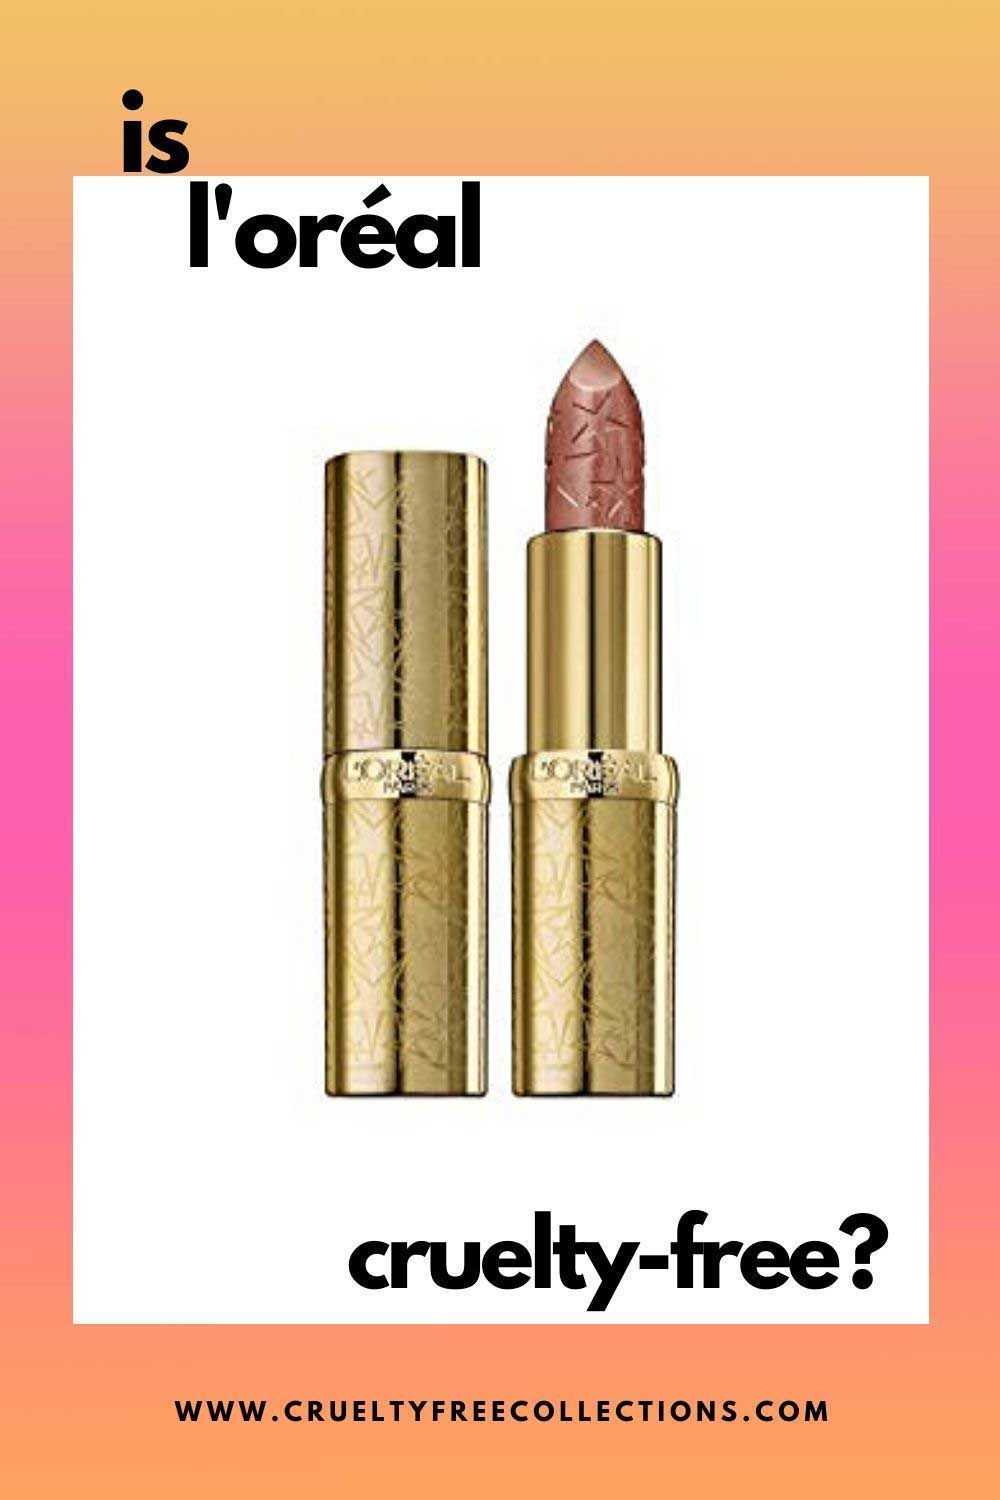 Is L Oreal Cruelty Free Makeup Brands In 2020 Cruelty Free Makeup Brands Cruelty Free Makeup Makeup Brands